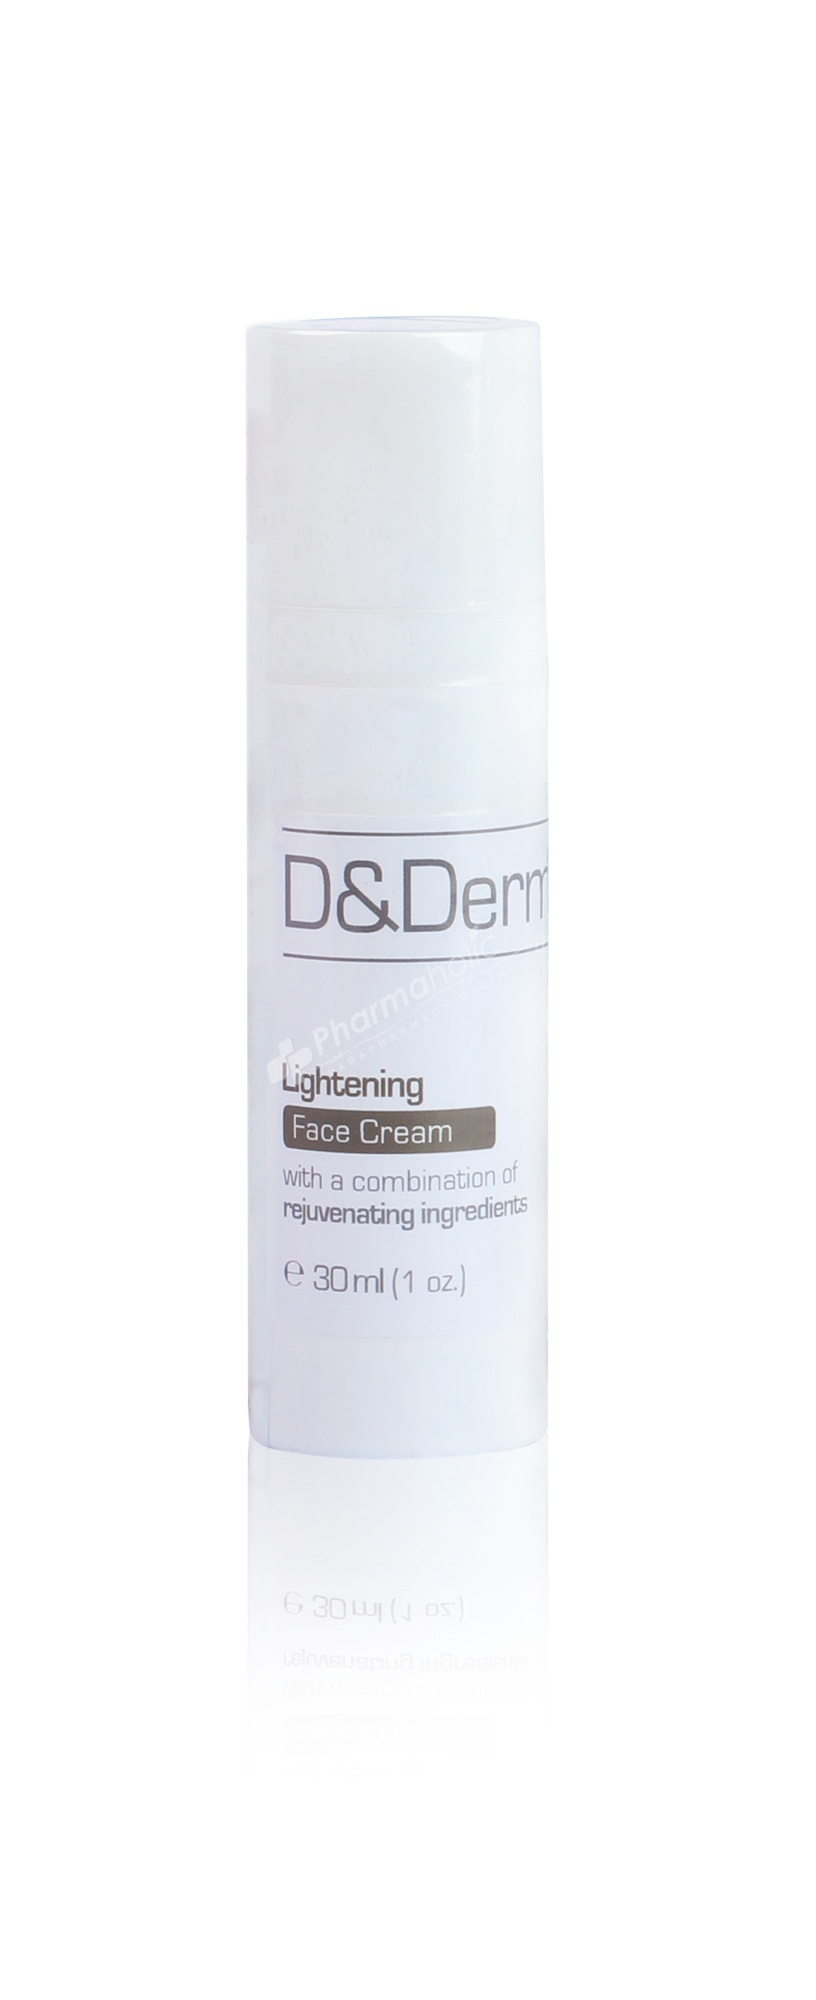 D&Derm Lightening Face Cream